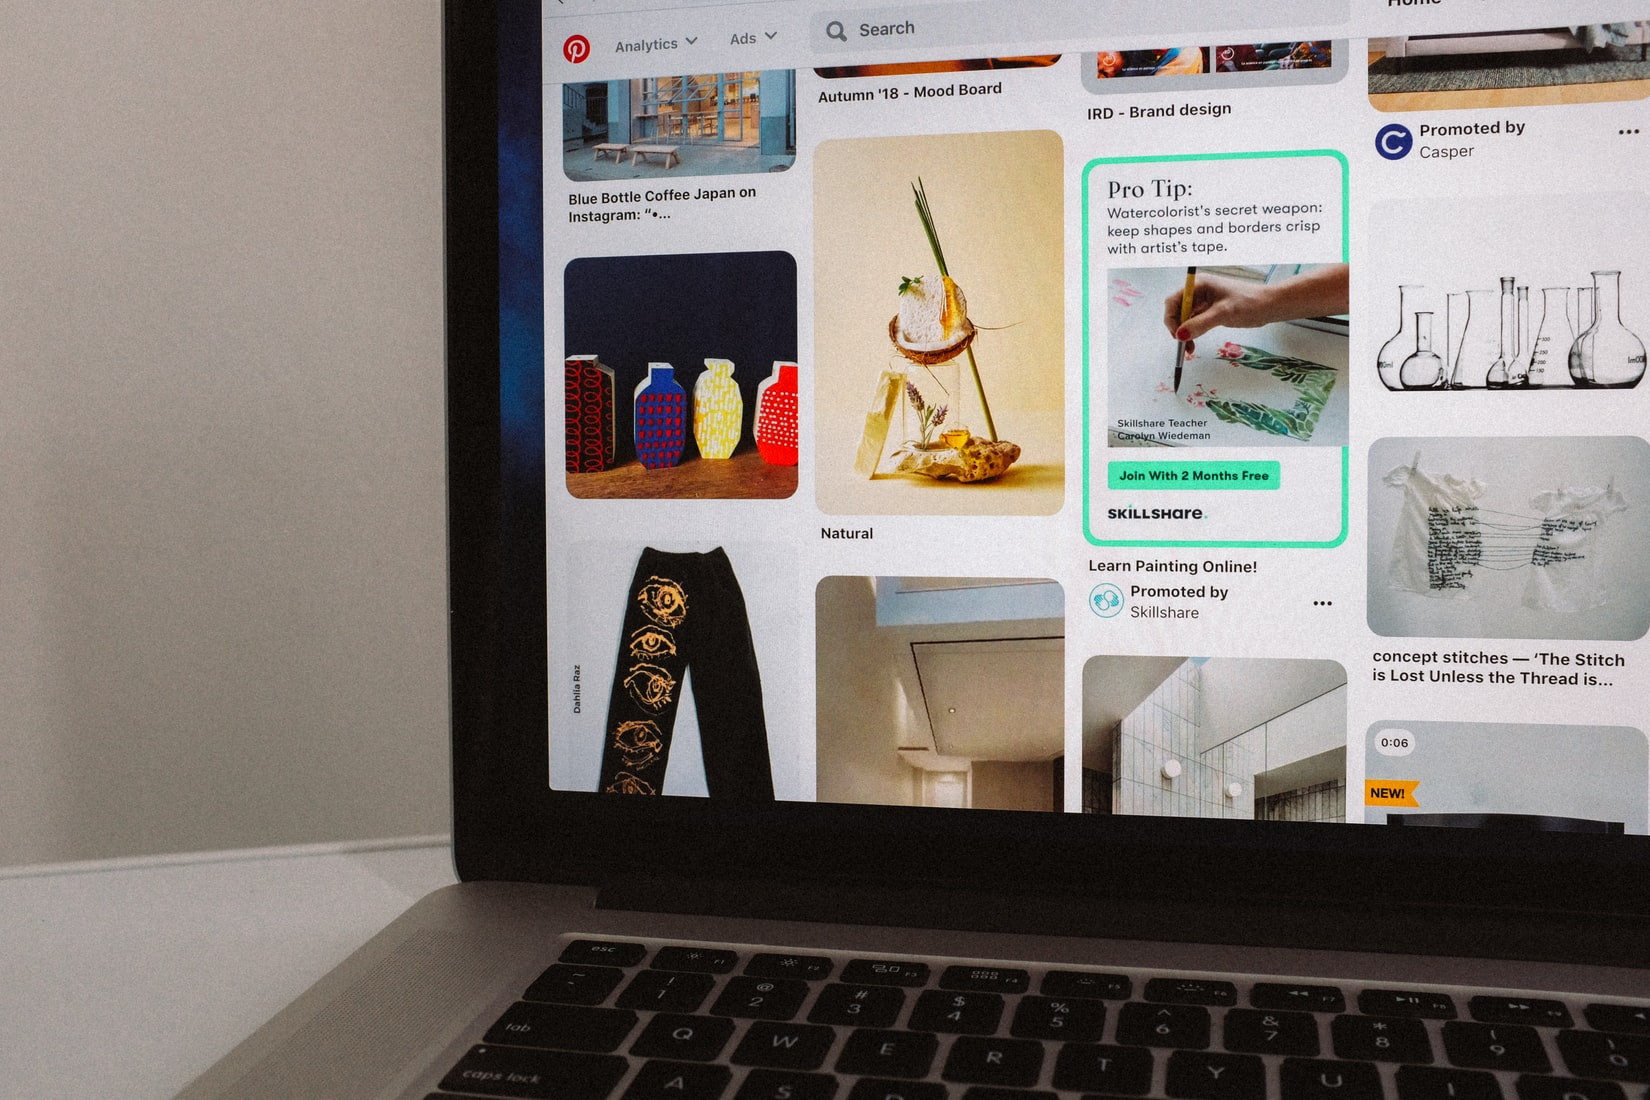 Pinterest's New 'Shopping Spotlights' Feature Highlights Product Recommendations from Fashion Influencers